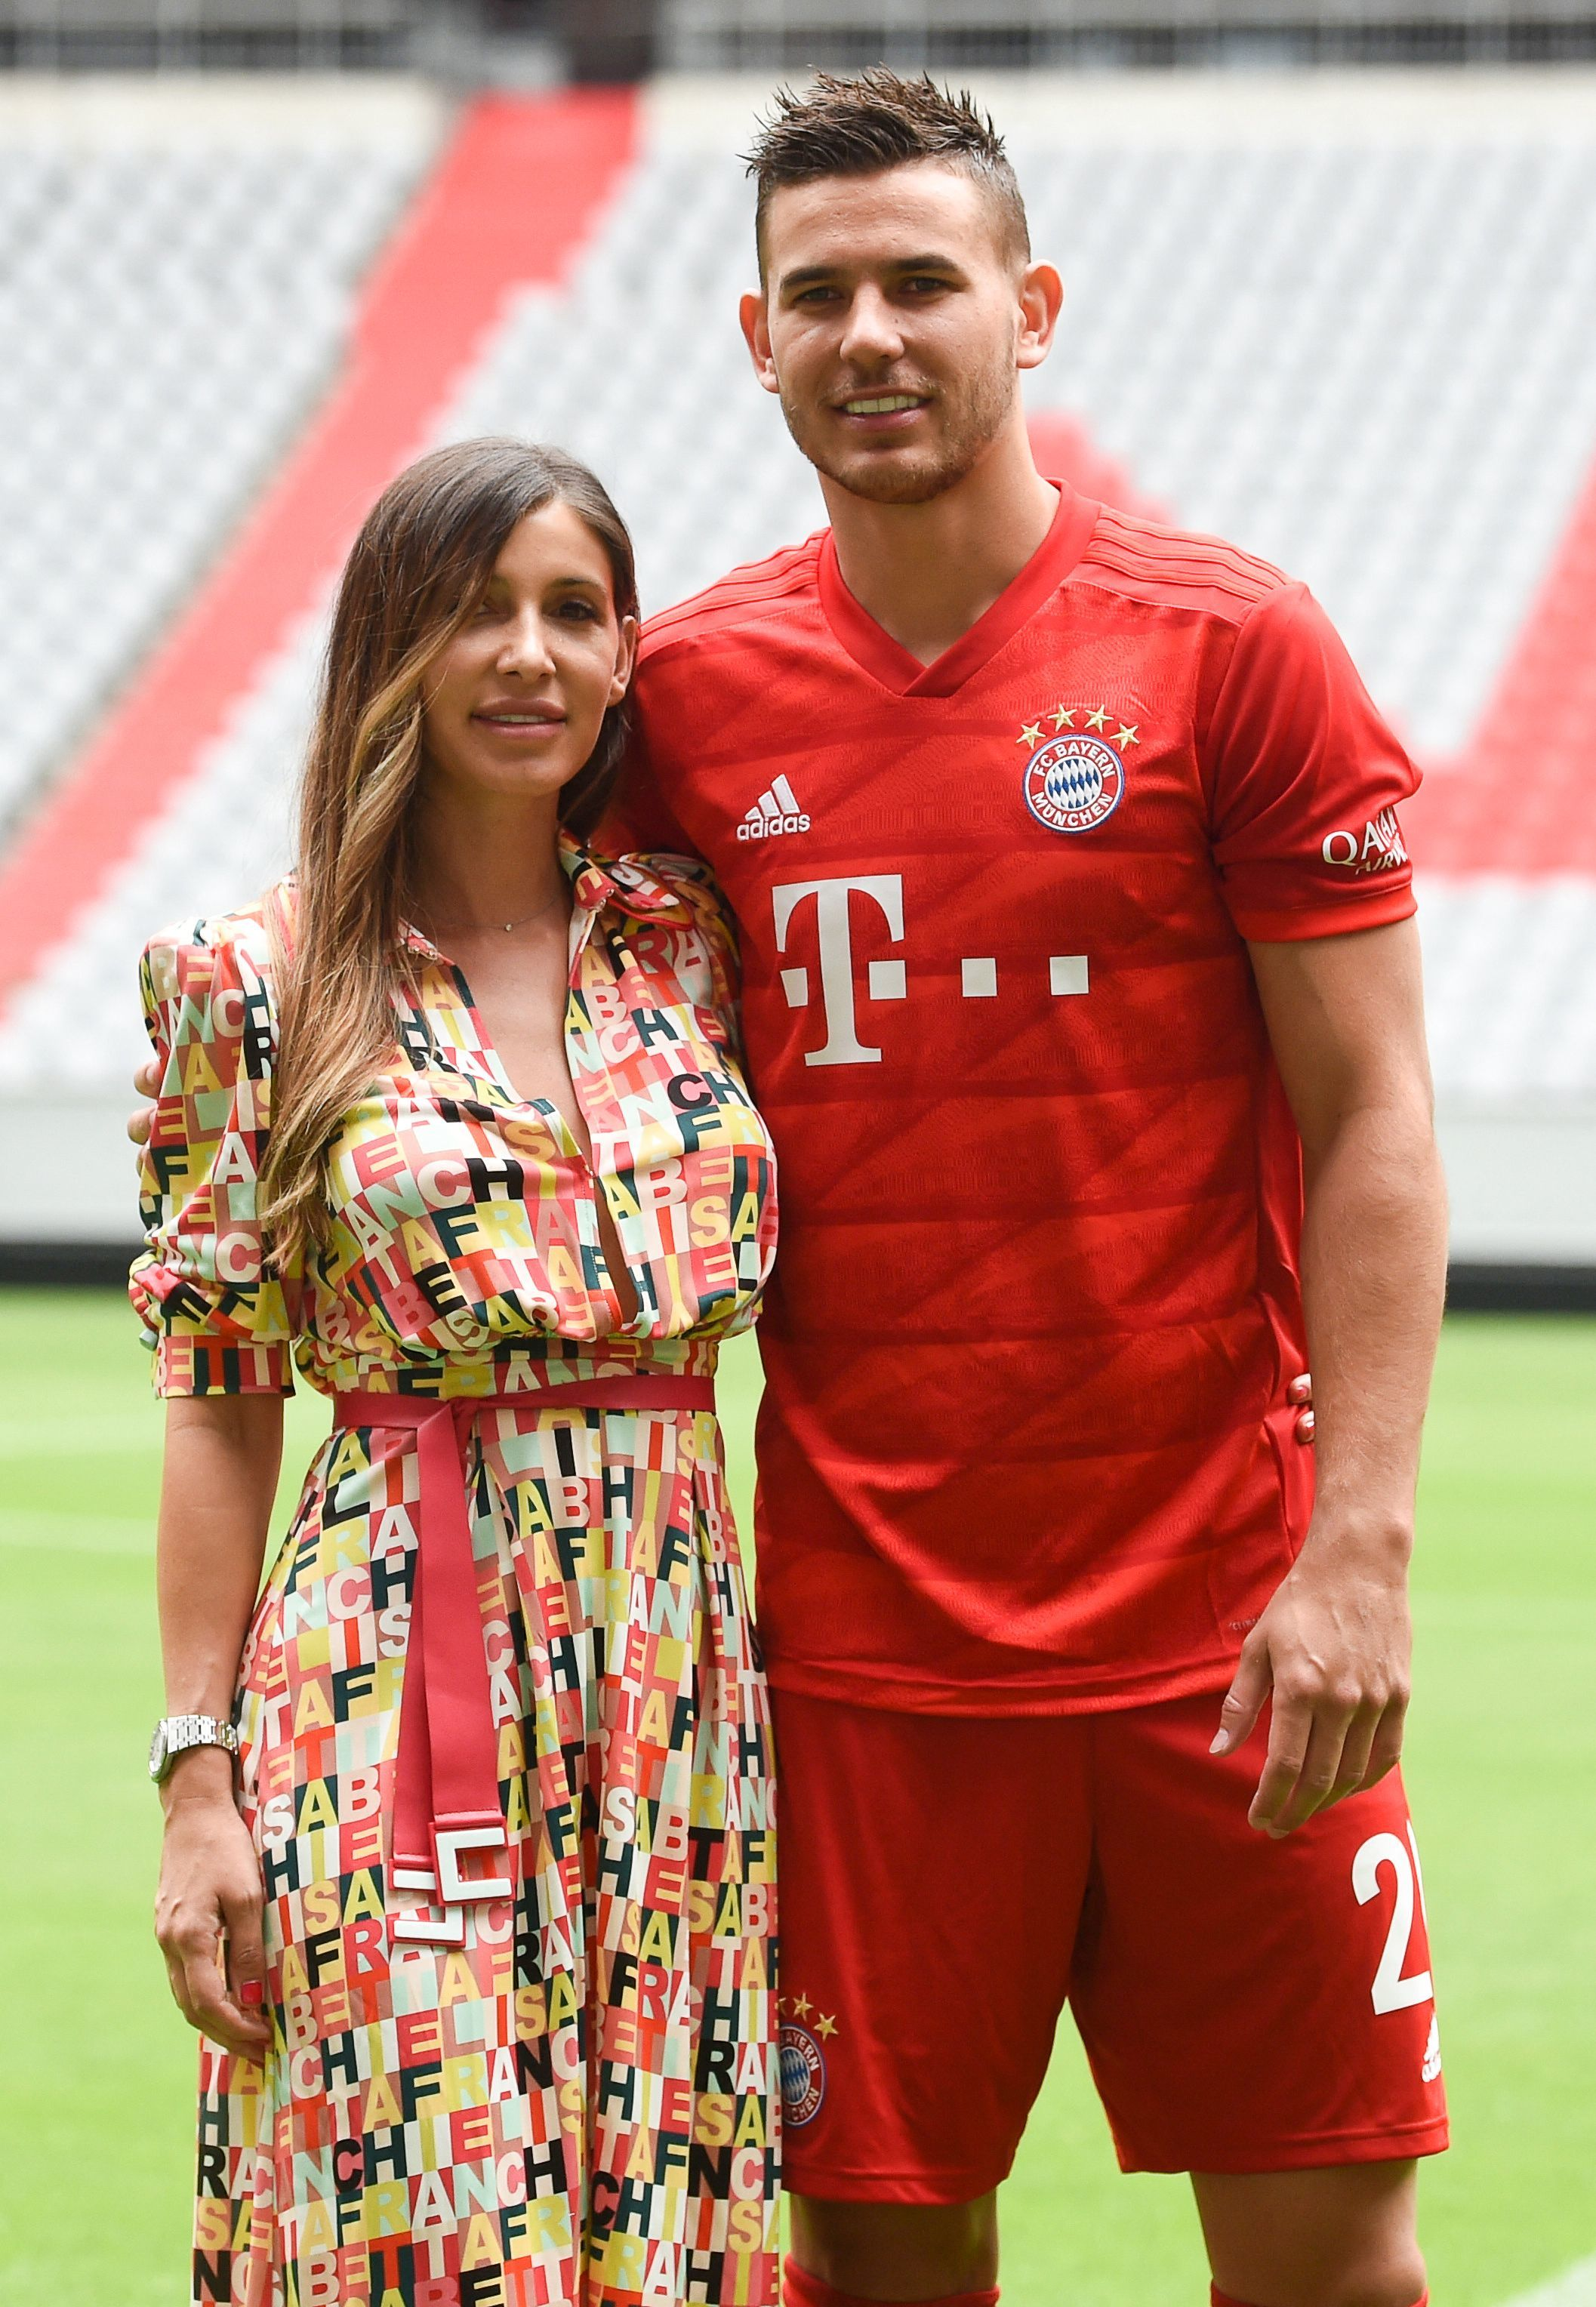 """(FILES) In this file photo taken on July 8, 2019 New Bayern Munich French defender  lt;HIT gt;Lucas lt;/HIT gt;  lt;HIT gt;Hernandez lt;/HIT gt; and his wife Amelia Llorente (L) pose after a presentation in the stadium in Munich, southern Germany. -  lt;HIT gt;Hernandez lt;/HIT gt; has been sentenced for domestic violence and has until October 28 to enter prison in Spain, unless his appeal is accepted, the Superior Court of Justice of Madrid (TSJ) announced in a statement. The 25-year-old player """"voluntarily presented himself at 11.30am today, one day before he was due to appear before the Madrid court, which ordered his detention,"""" the TSJ said. (Photo by Christof STACHE / AFP)"""